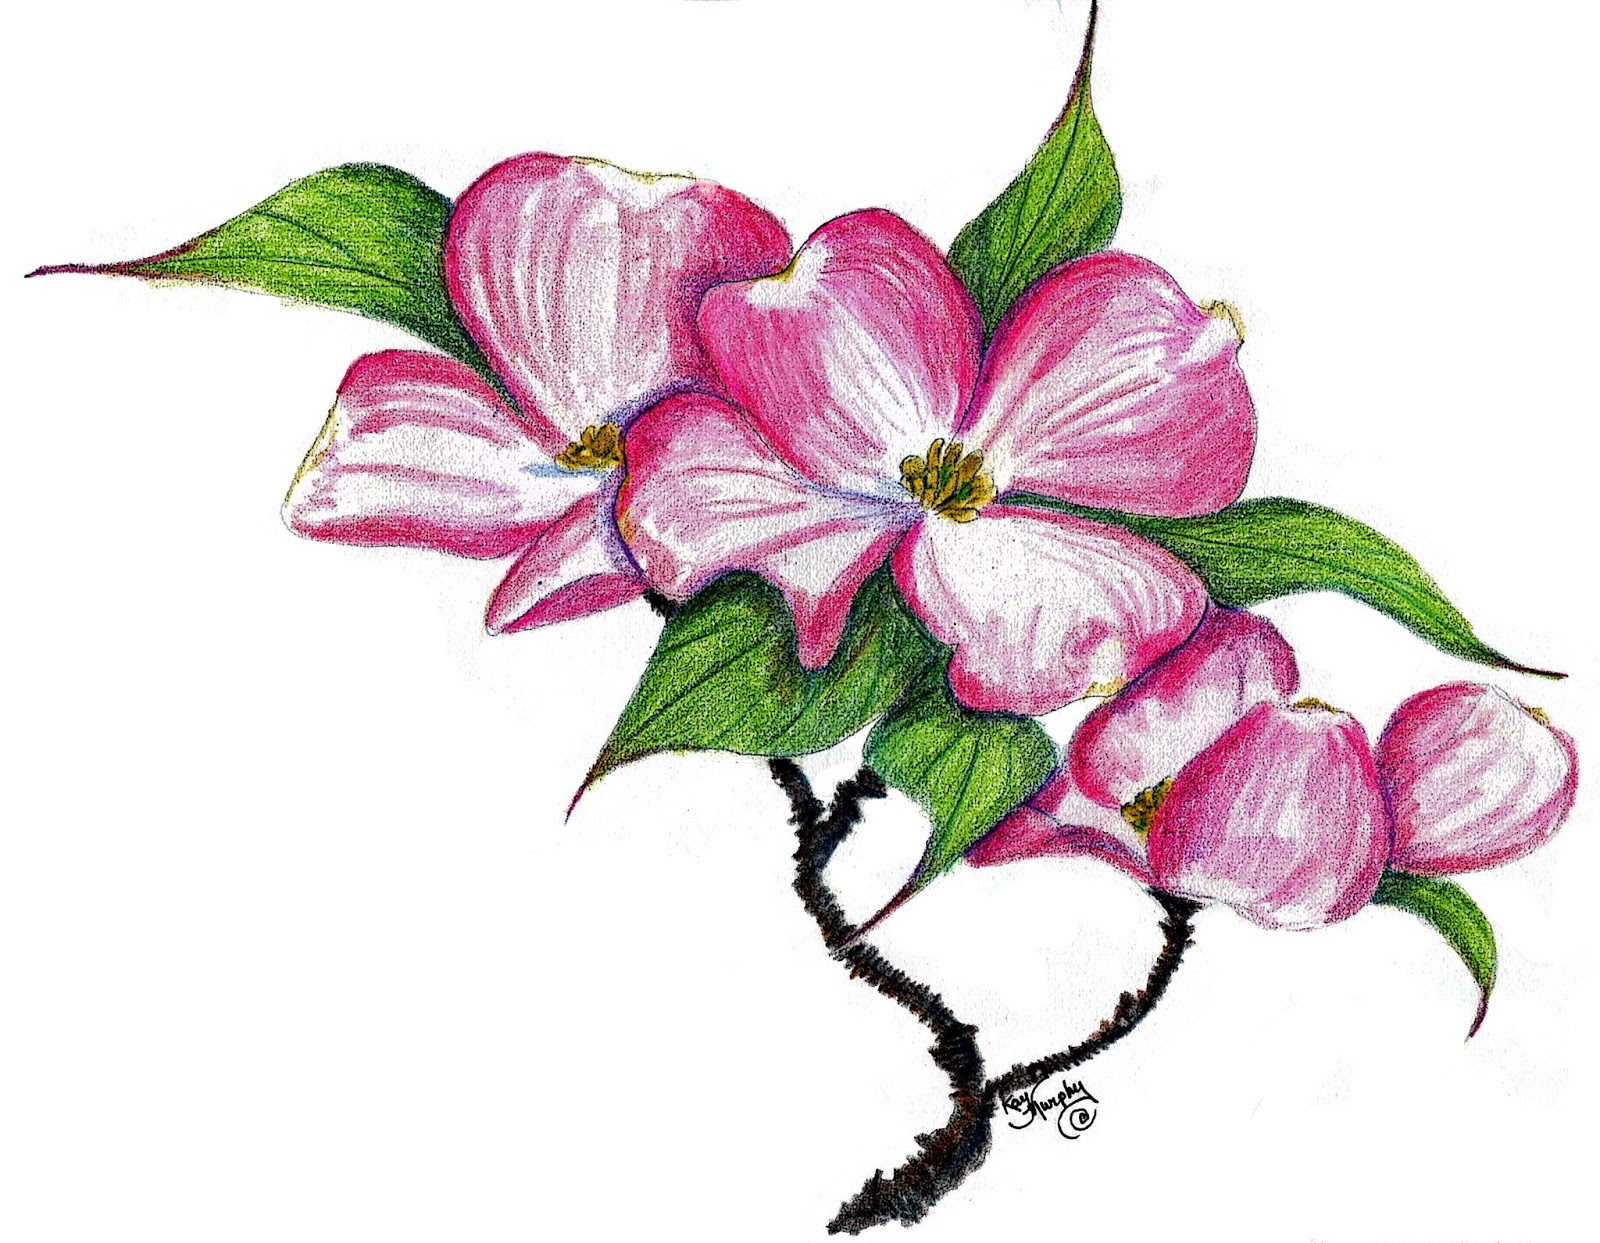 Dogwood Flower Line Drawing : Dogwood flower clipart suggest